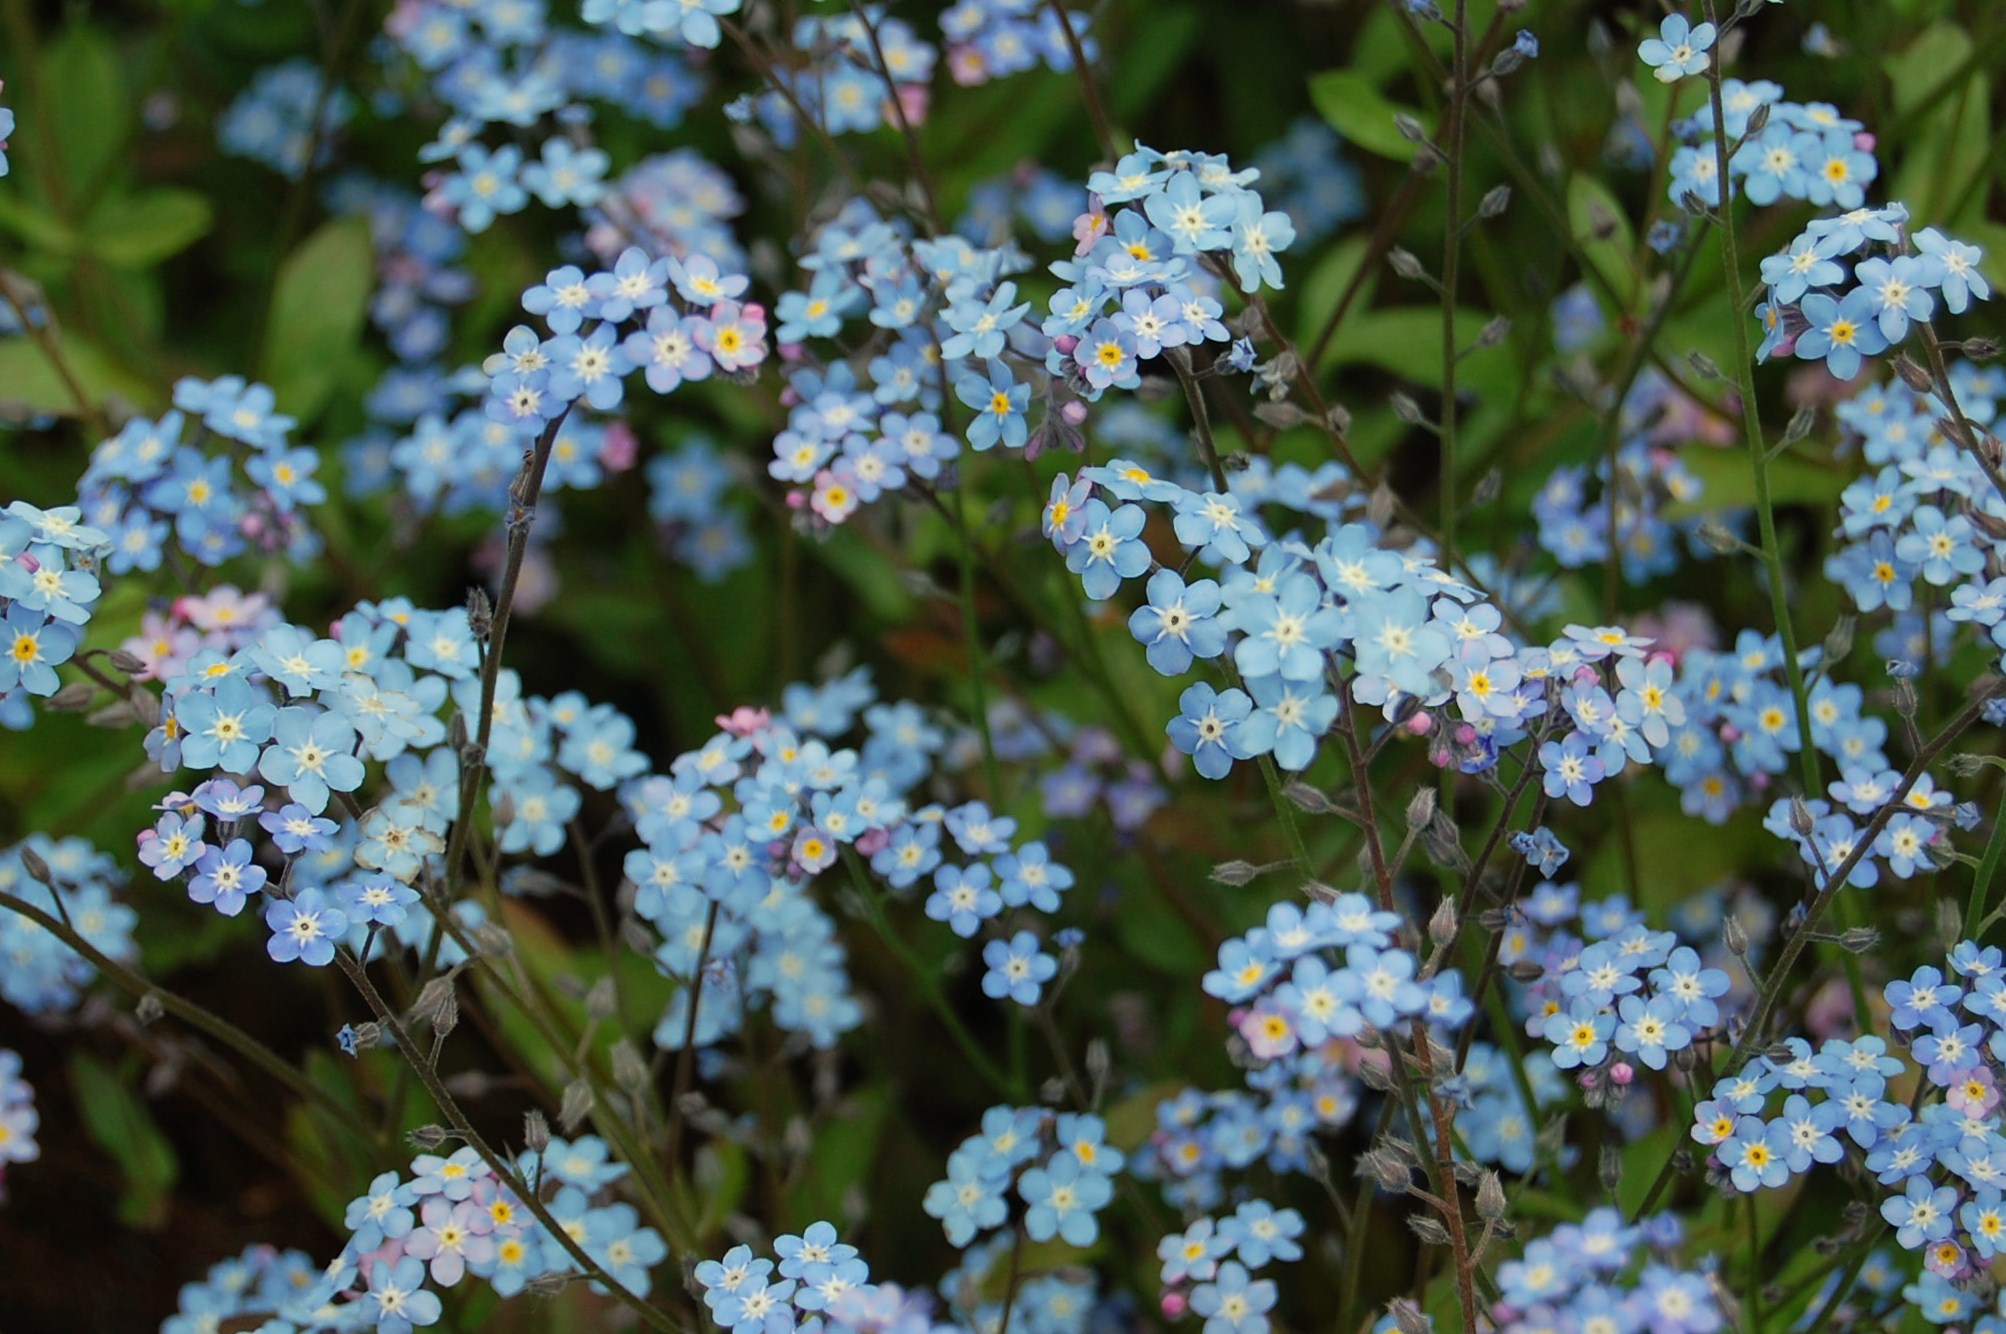 The forget me not a tiny gem of a flower shortfinalss blog the forget me not myosotis is a tiny gem of a flower or flowers would be a better term as there are over 50 species scattered across the globe izmirmasajfo